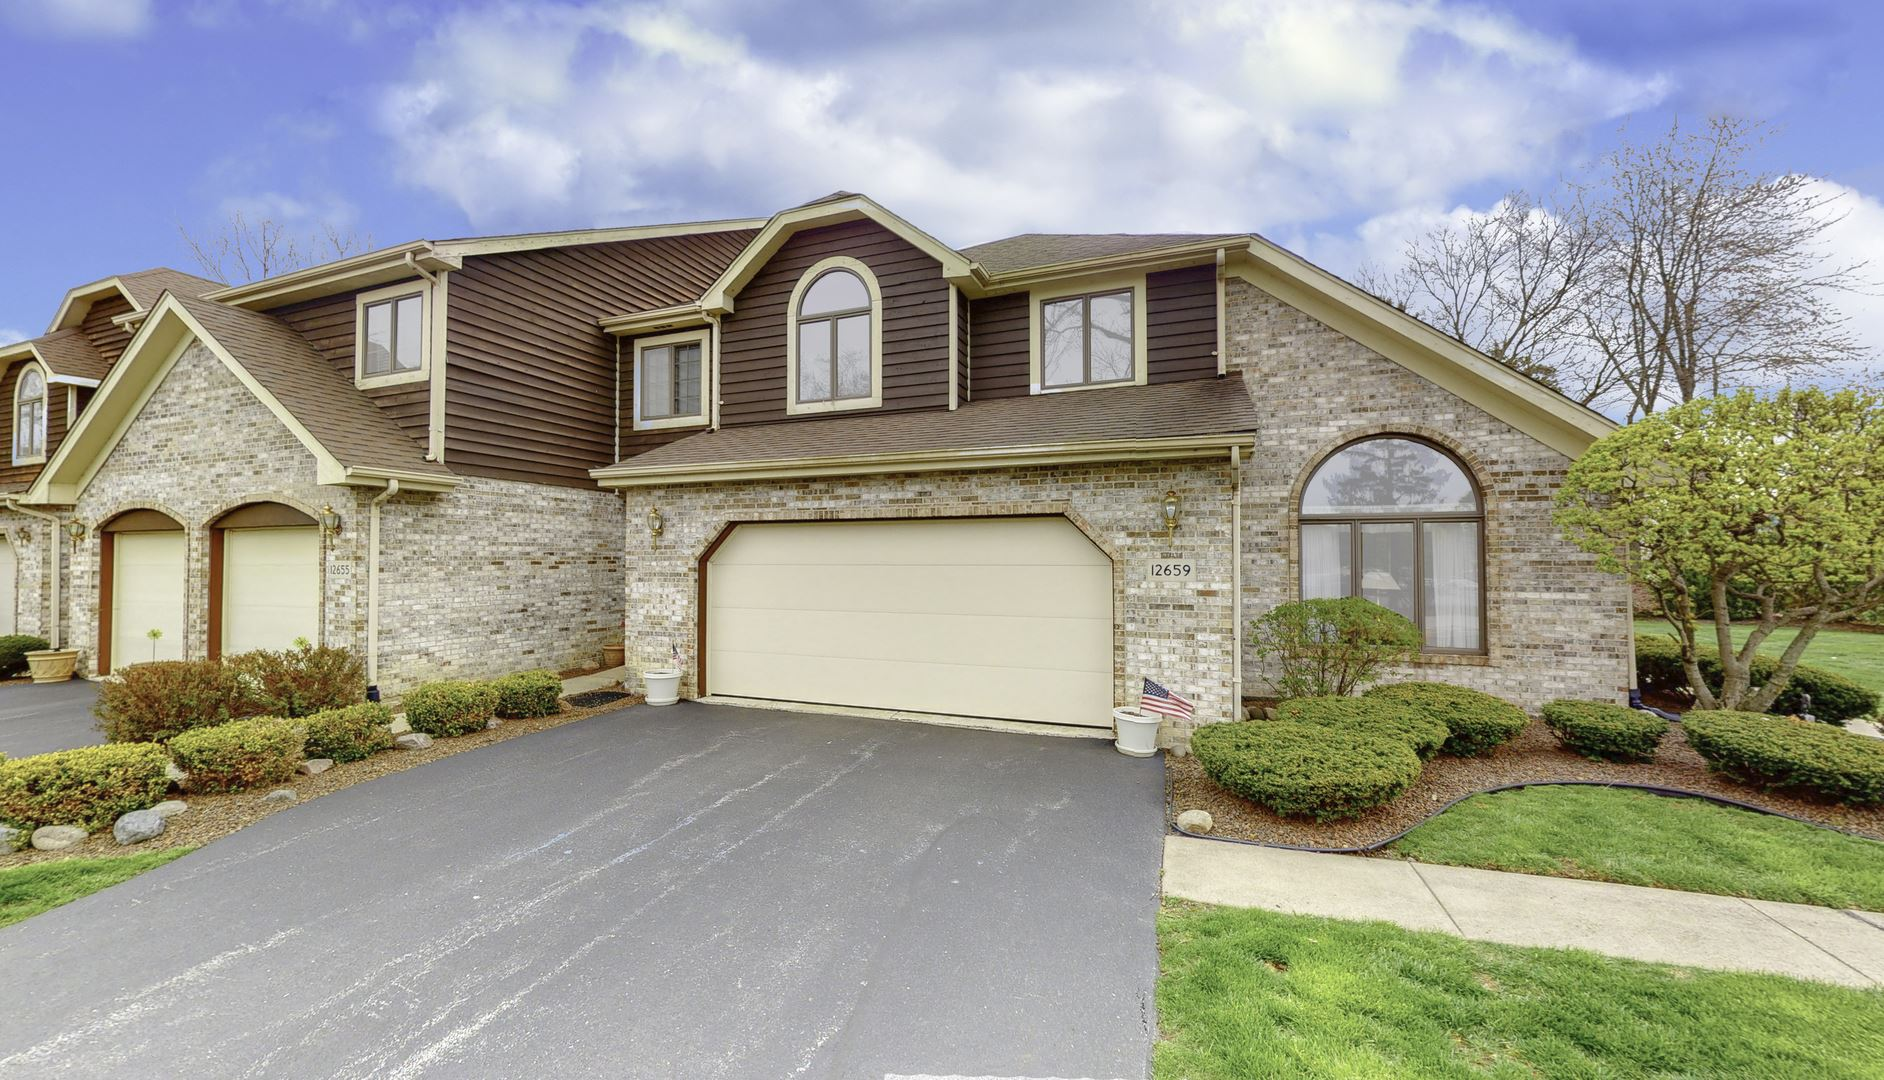 12659 S 70th Avenue, Palos Heights, IL 60463 - #: 10697803